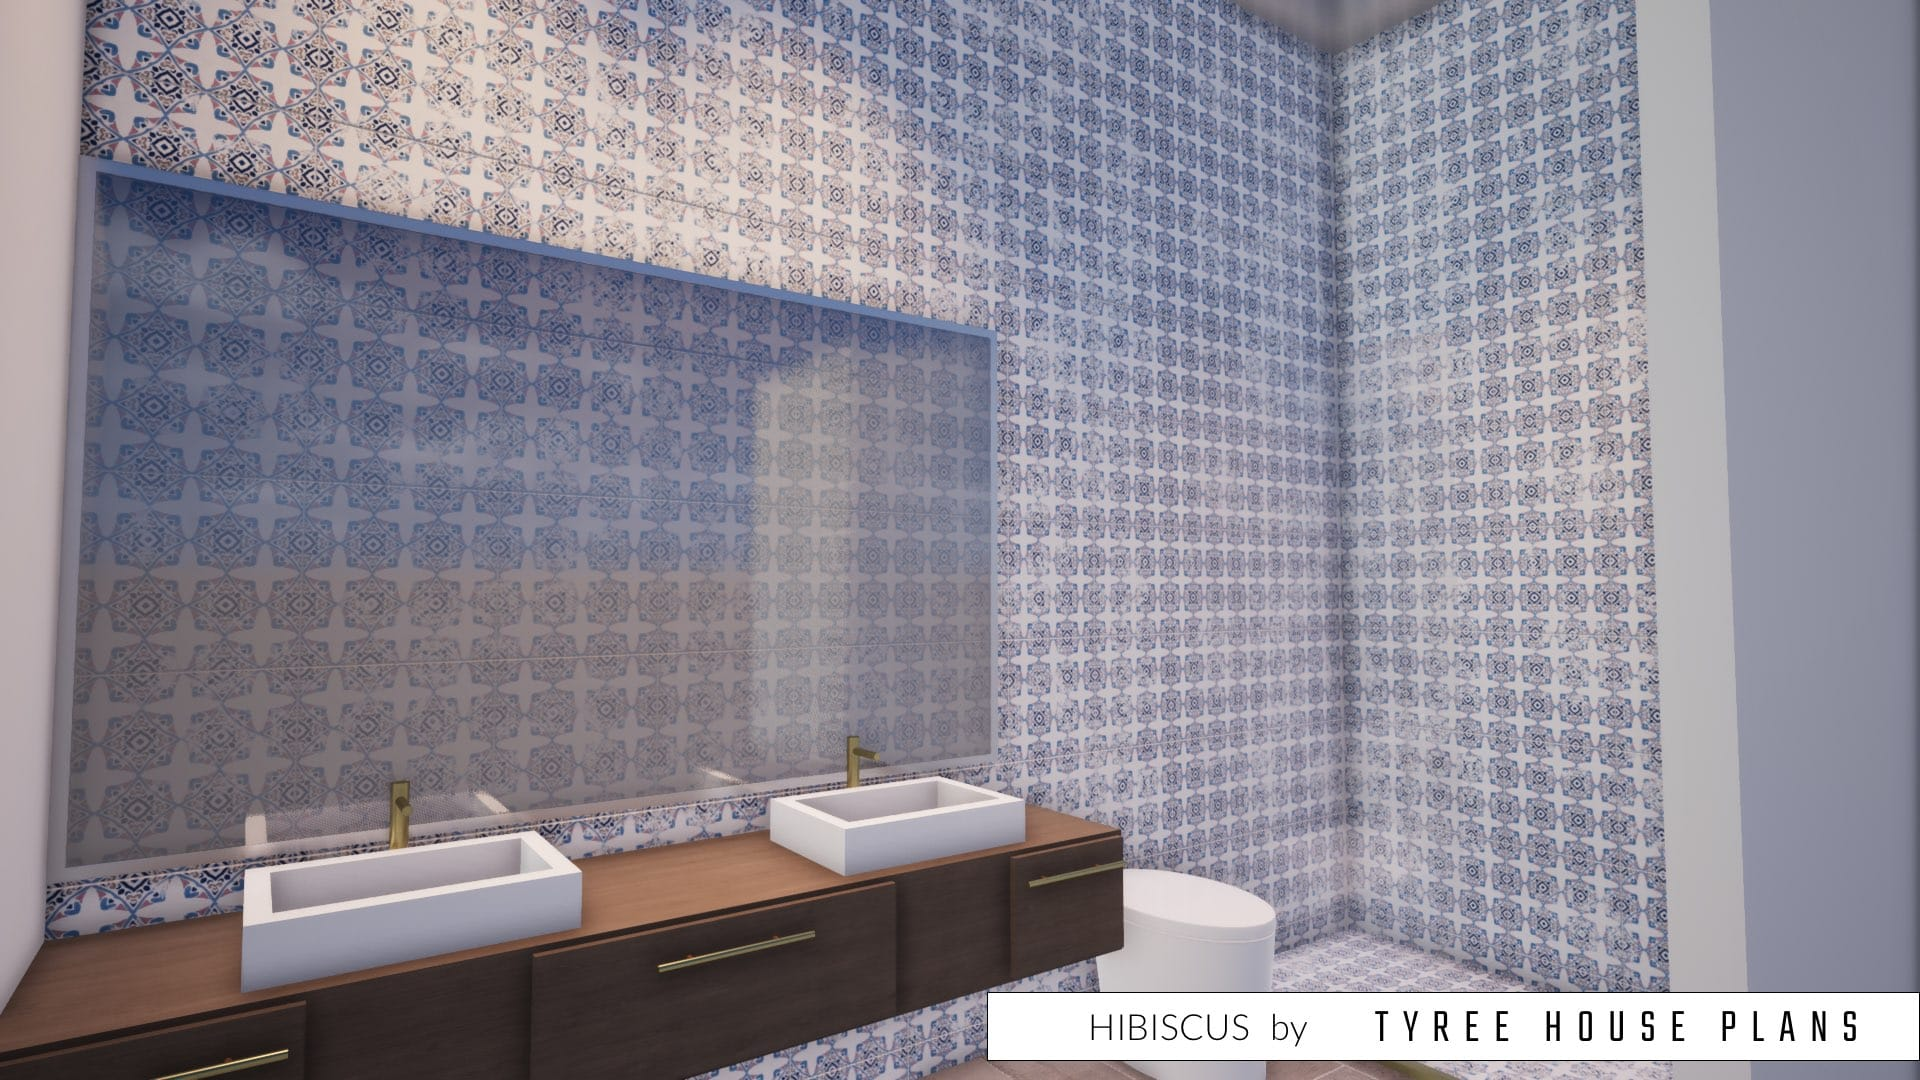 Hibiscus House Plan by Tyree House Plans